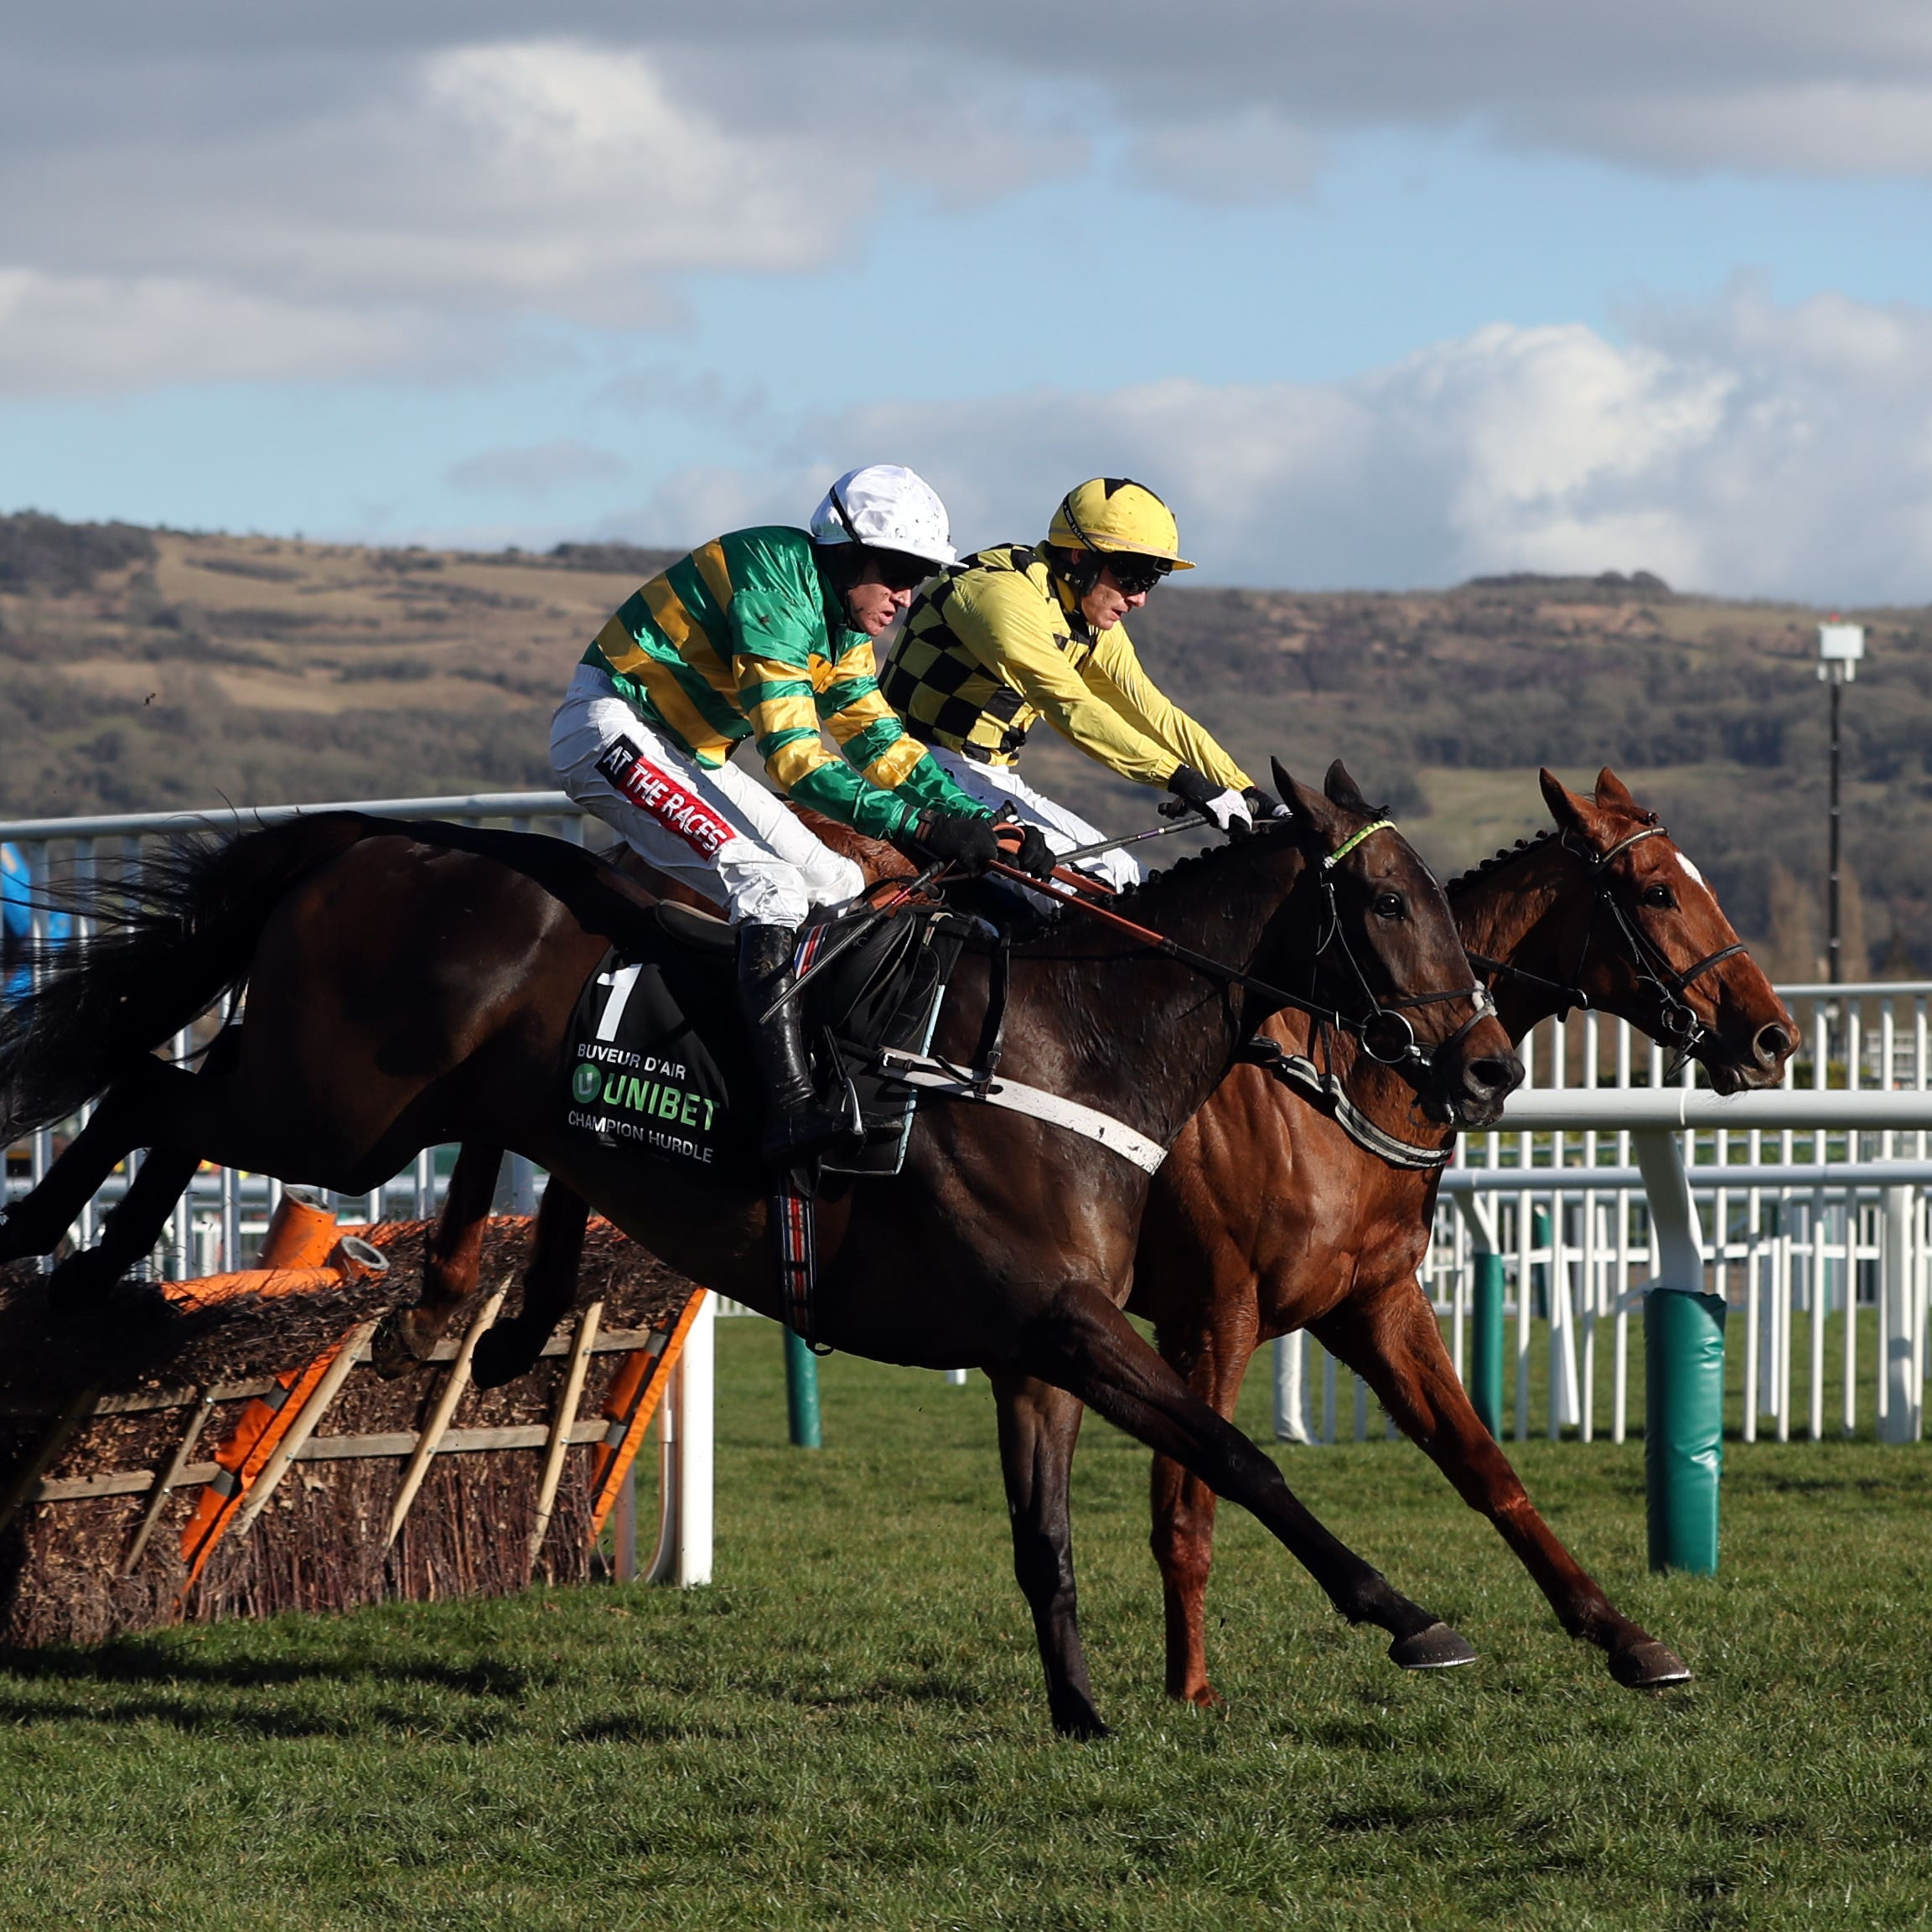 Buveur D'Air (front) on his way to winning the Unibet Champion Hurdle at Cheltenham last year